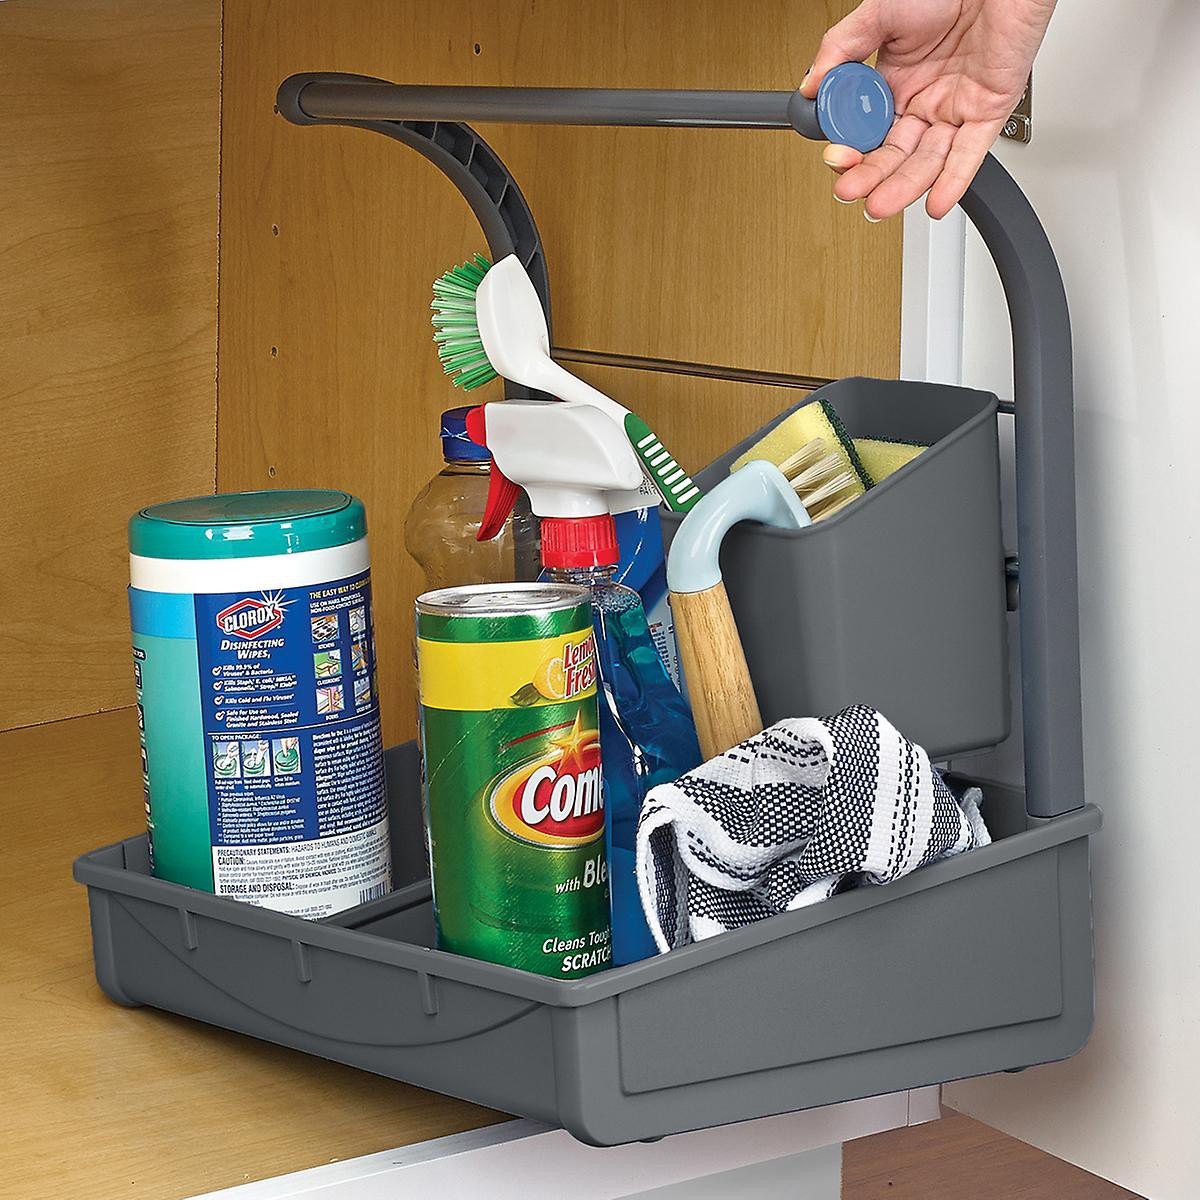 20. Polder Under Sink Storage